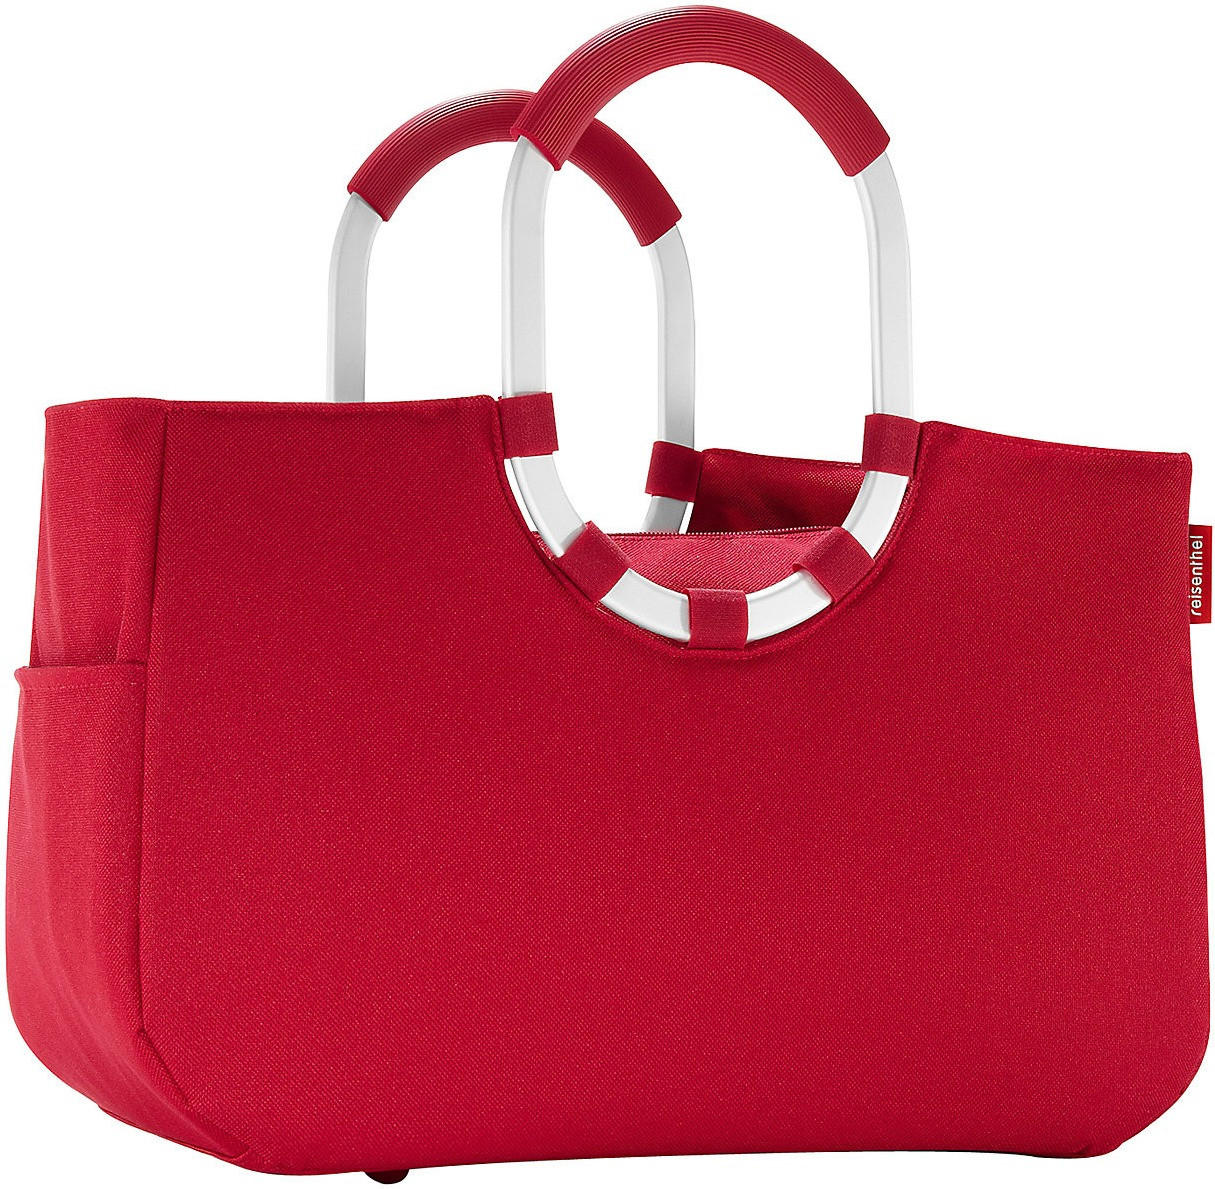 Reisenthel Loopshopper M rot